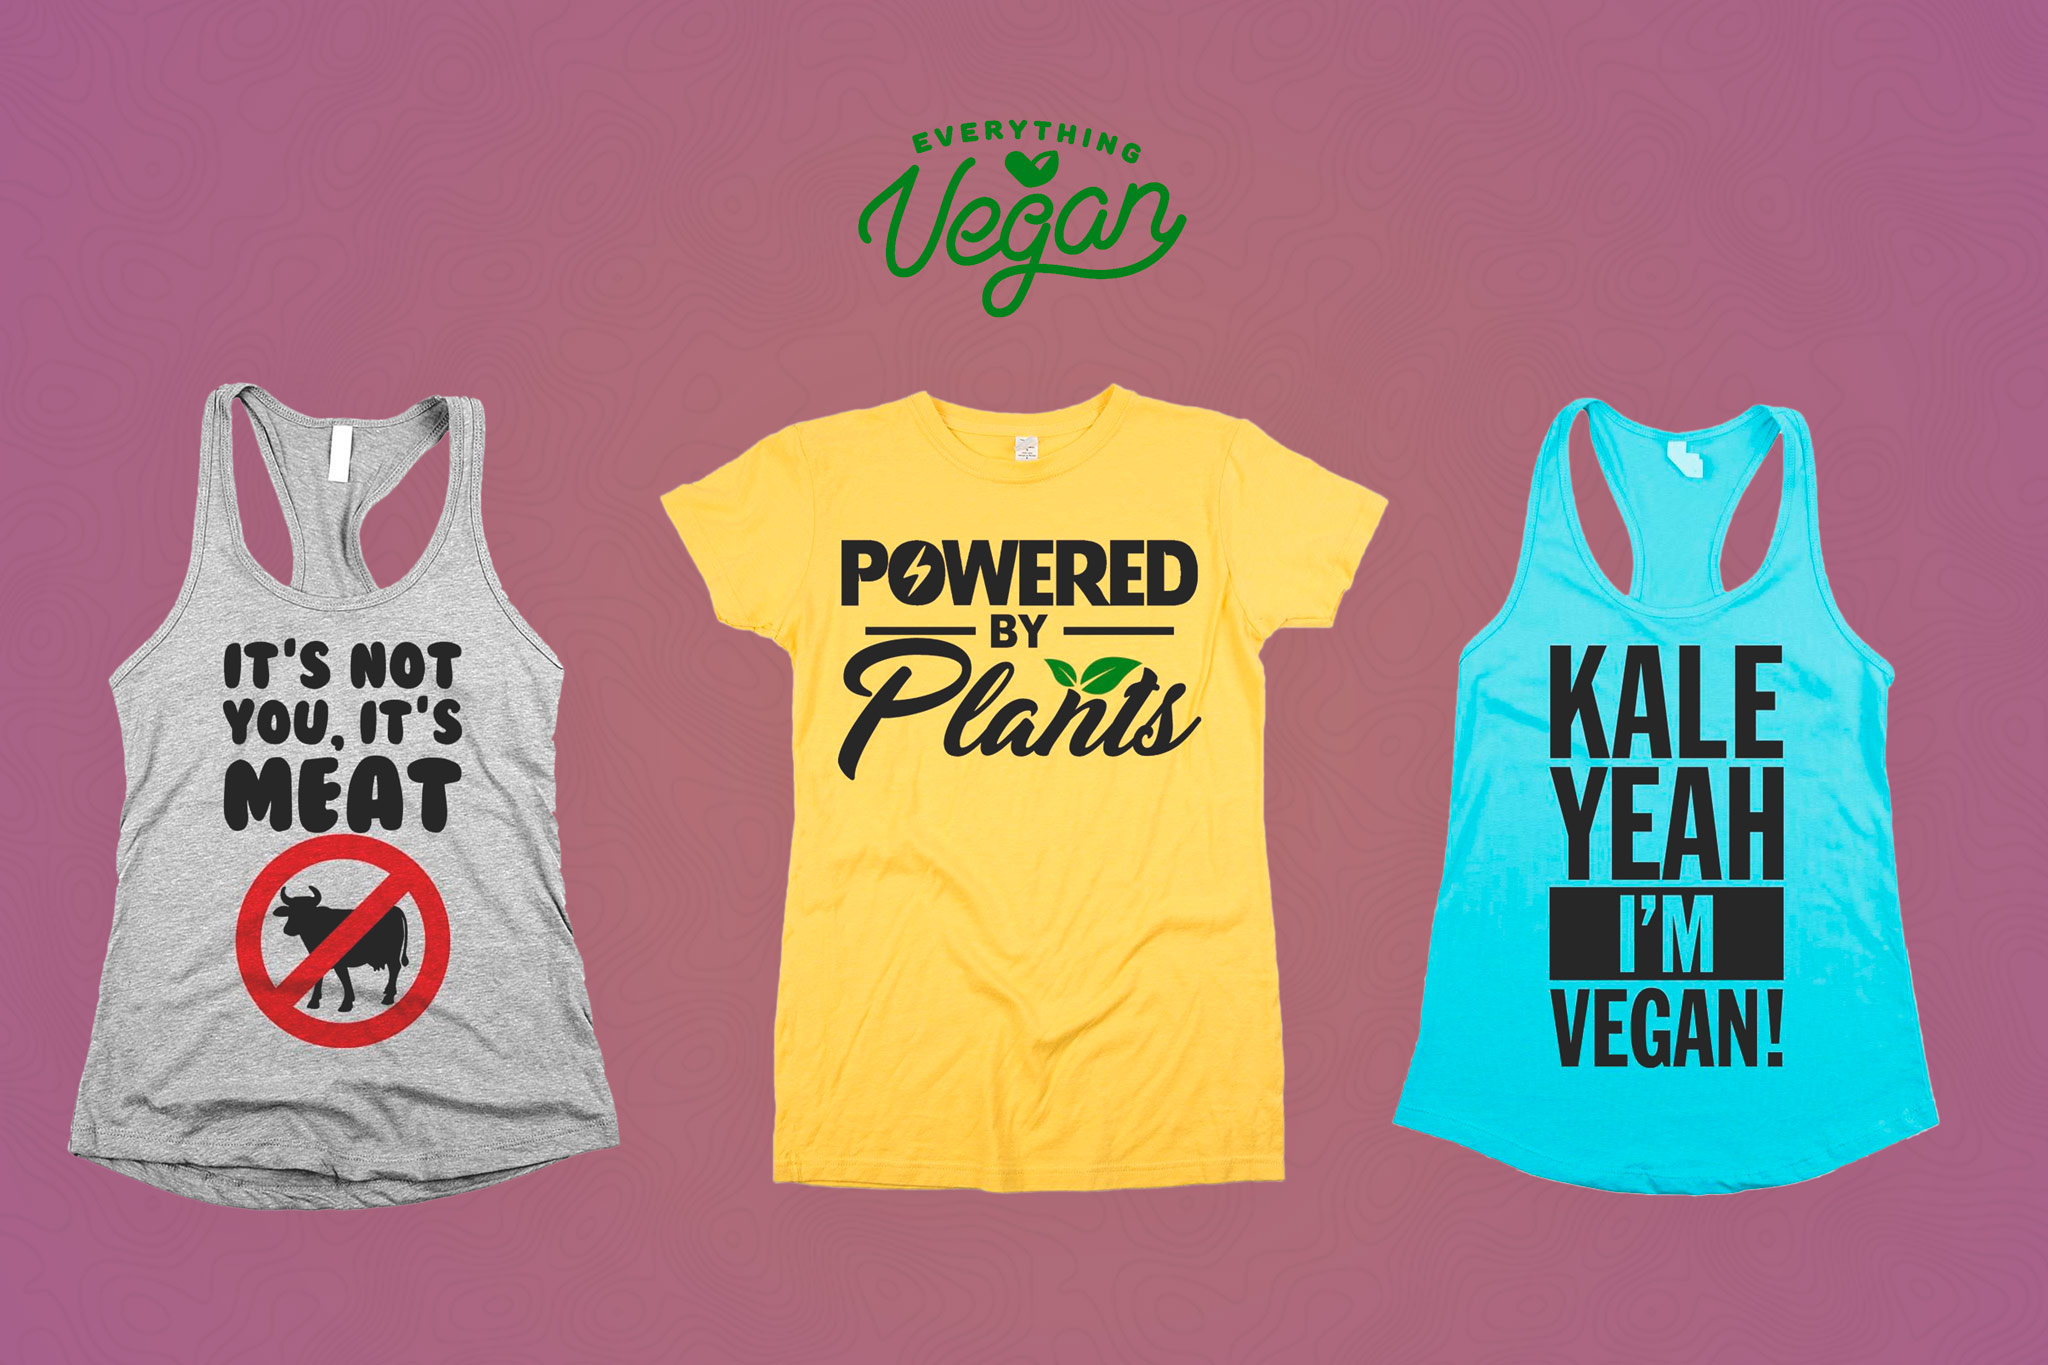 VEGAN-SHIRTS-EVERYTHING-VEGAN-ORGANIC-NEWSROOM